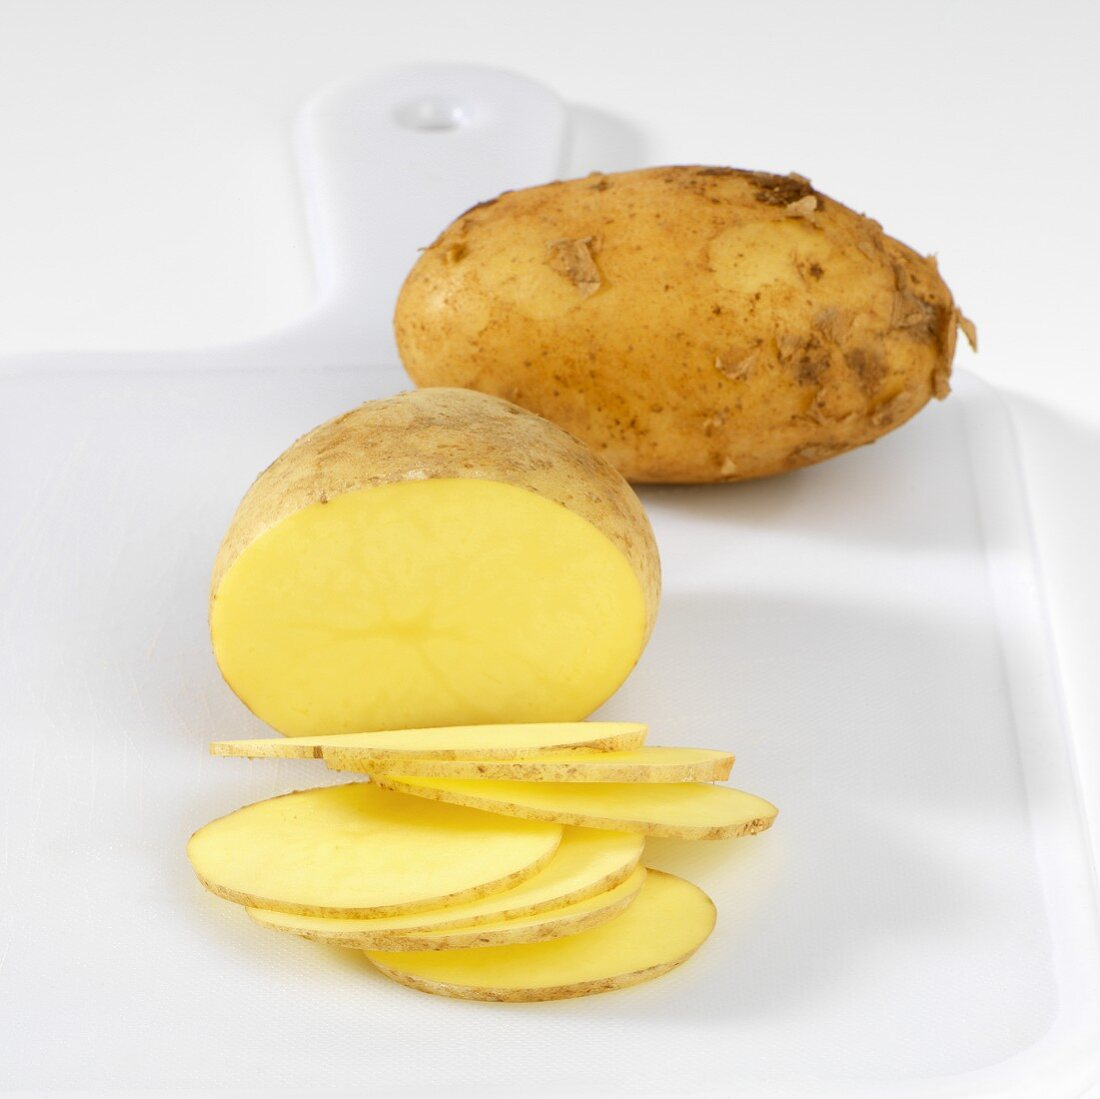 Potatoes, one whole, one partly sliced